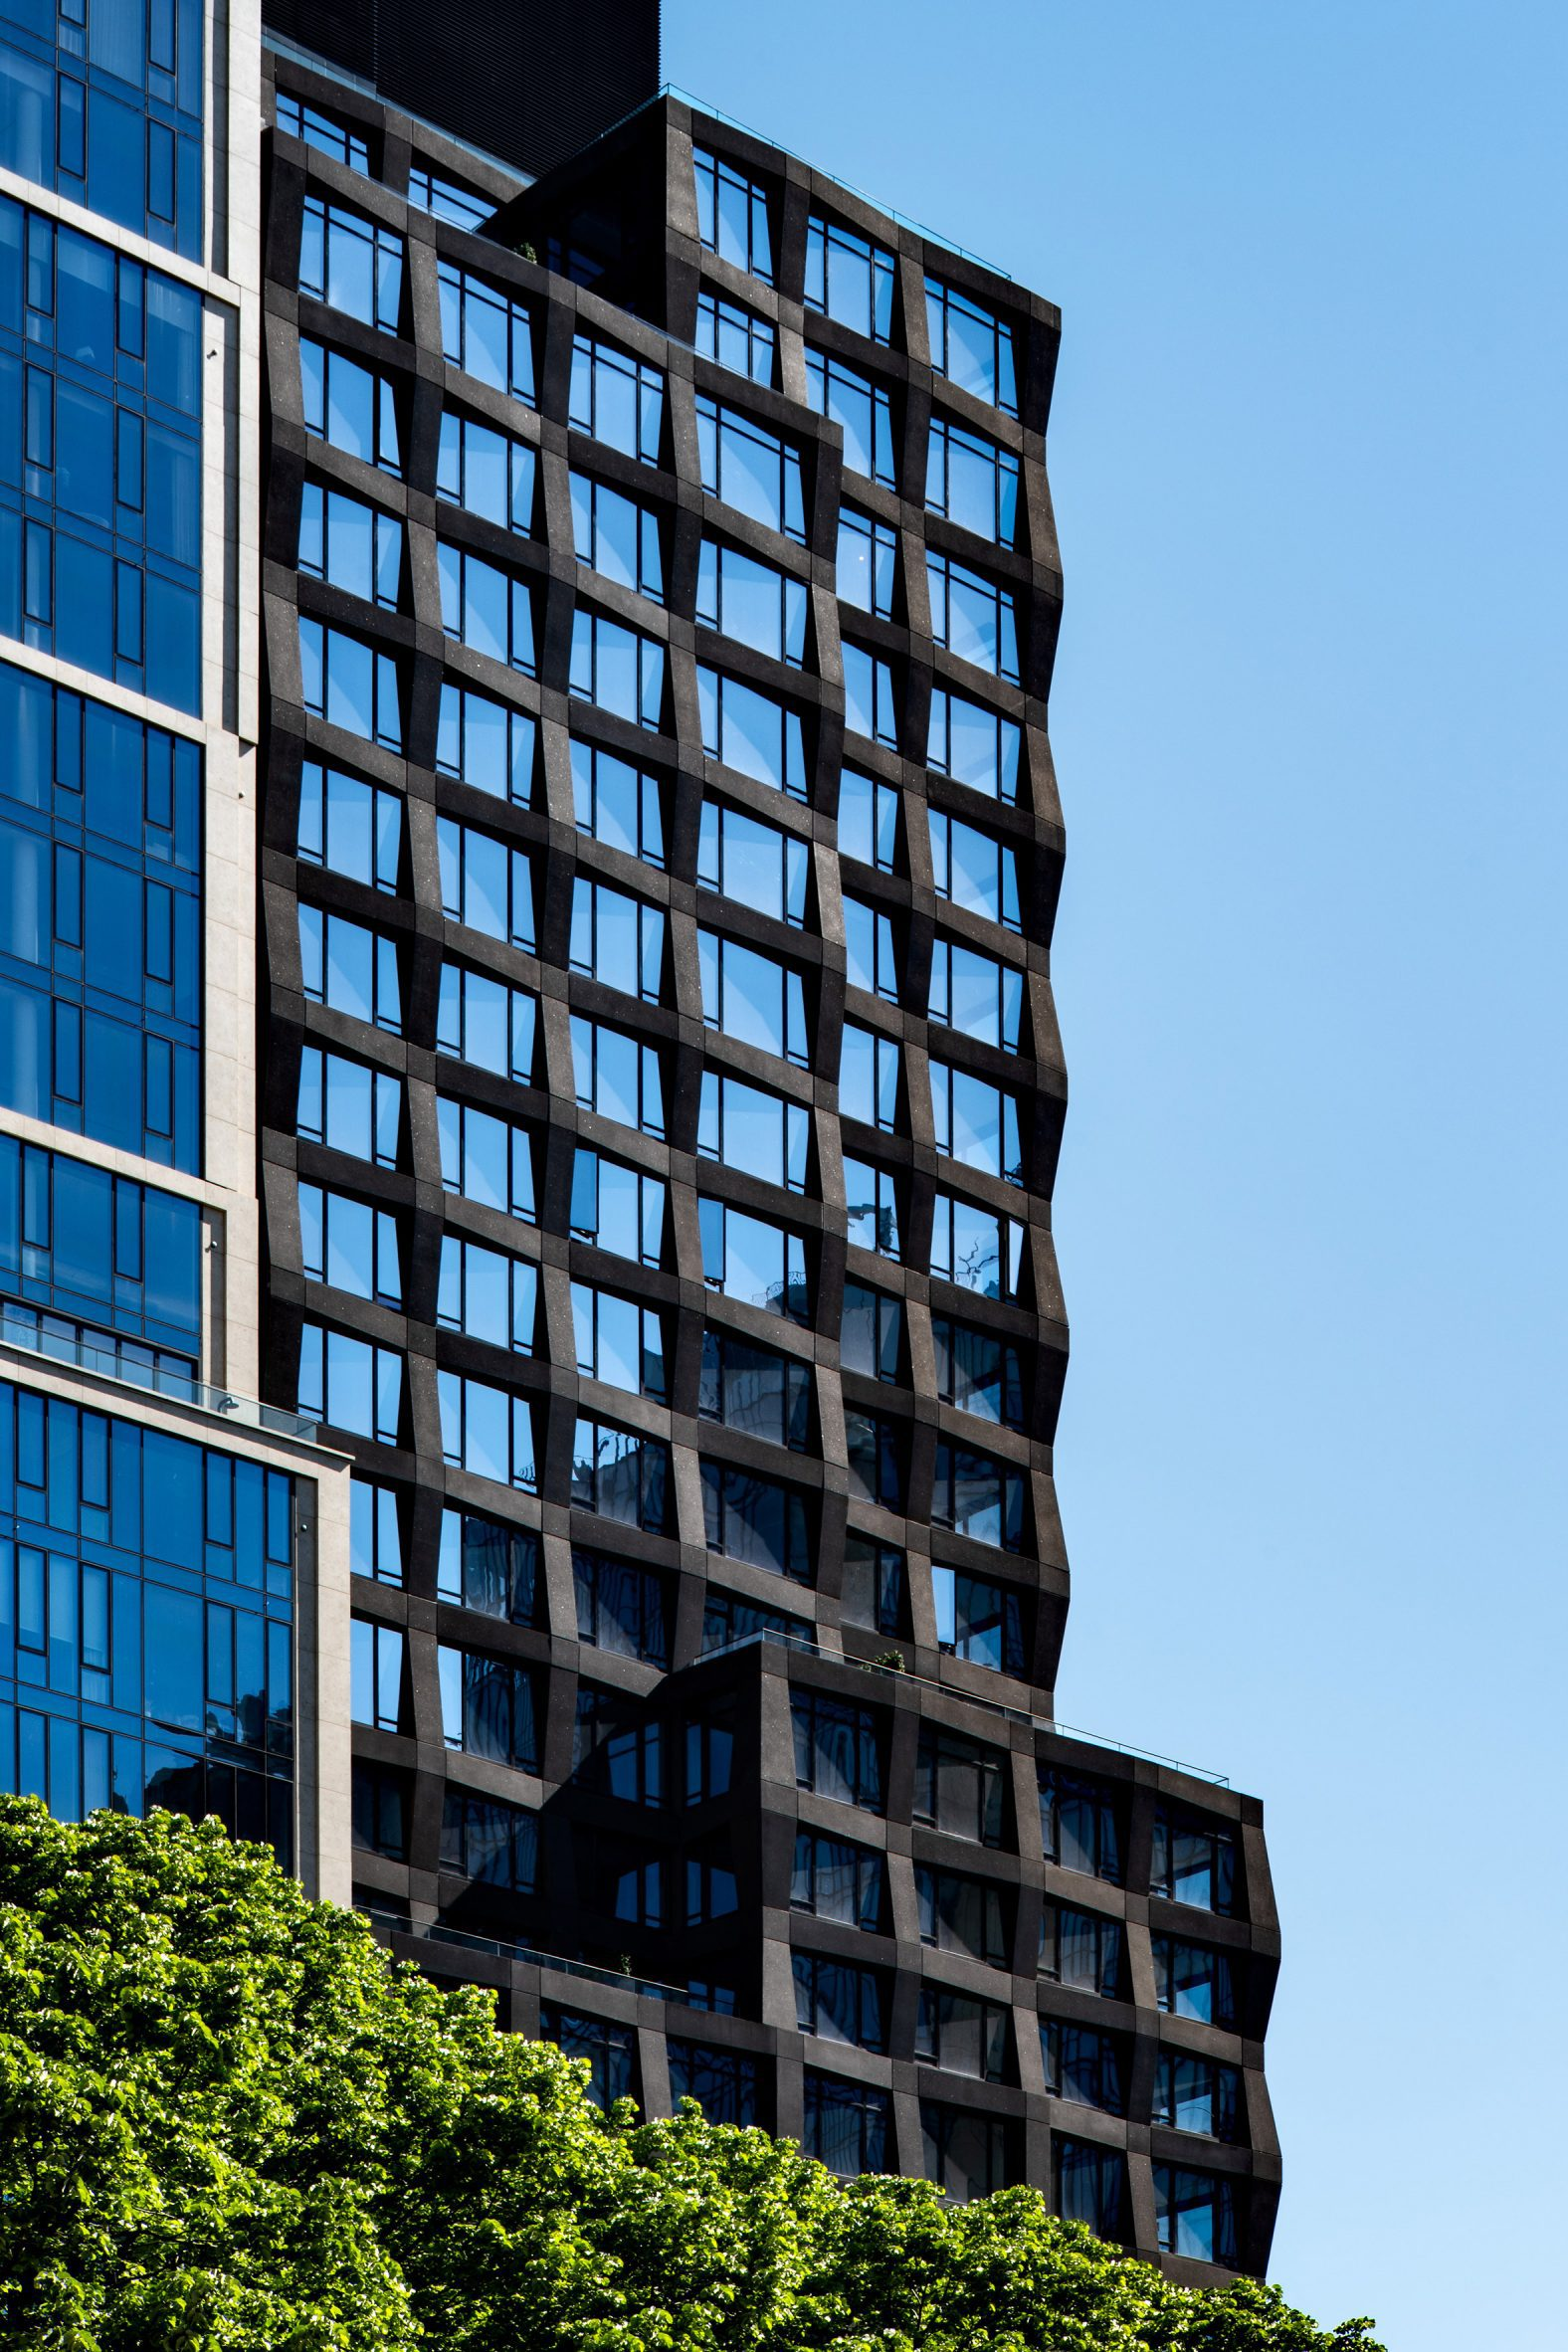 S9 Architecture added glass and concrete facades